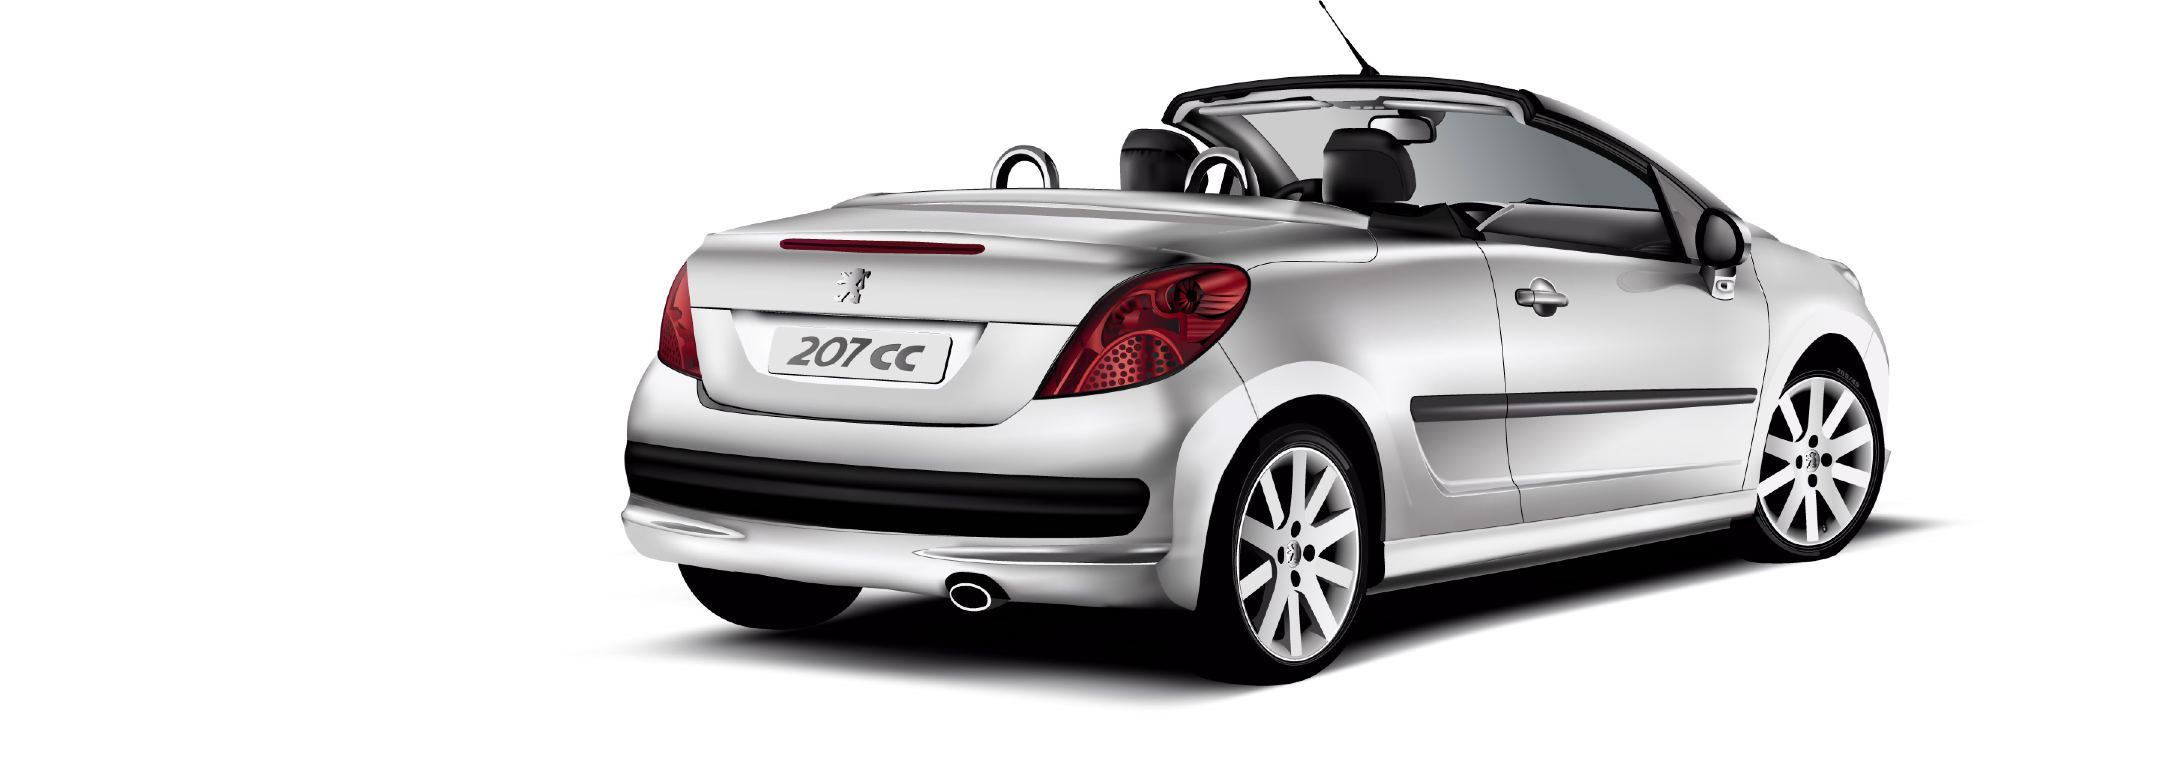 Peugeot 207CC by wakdor